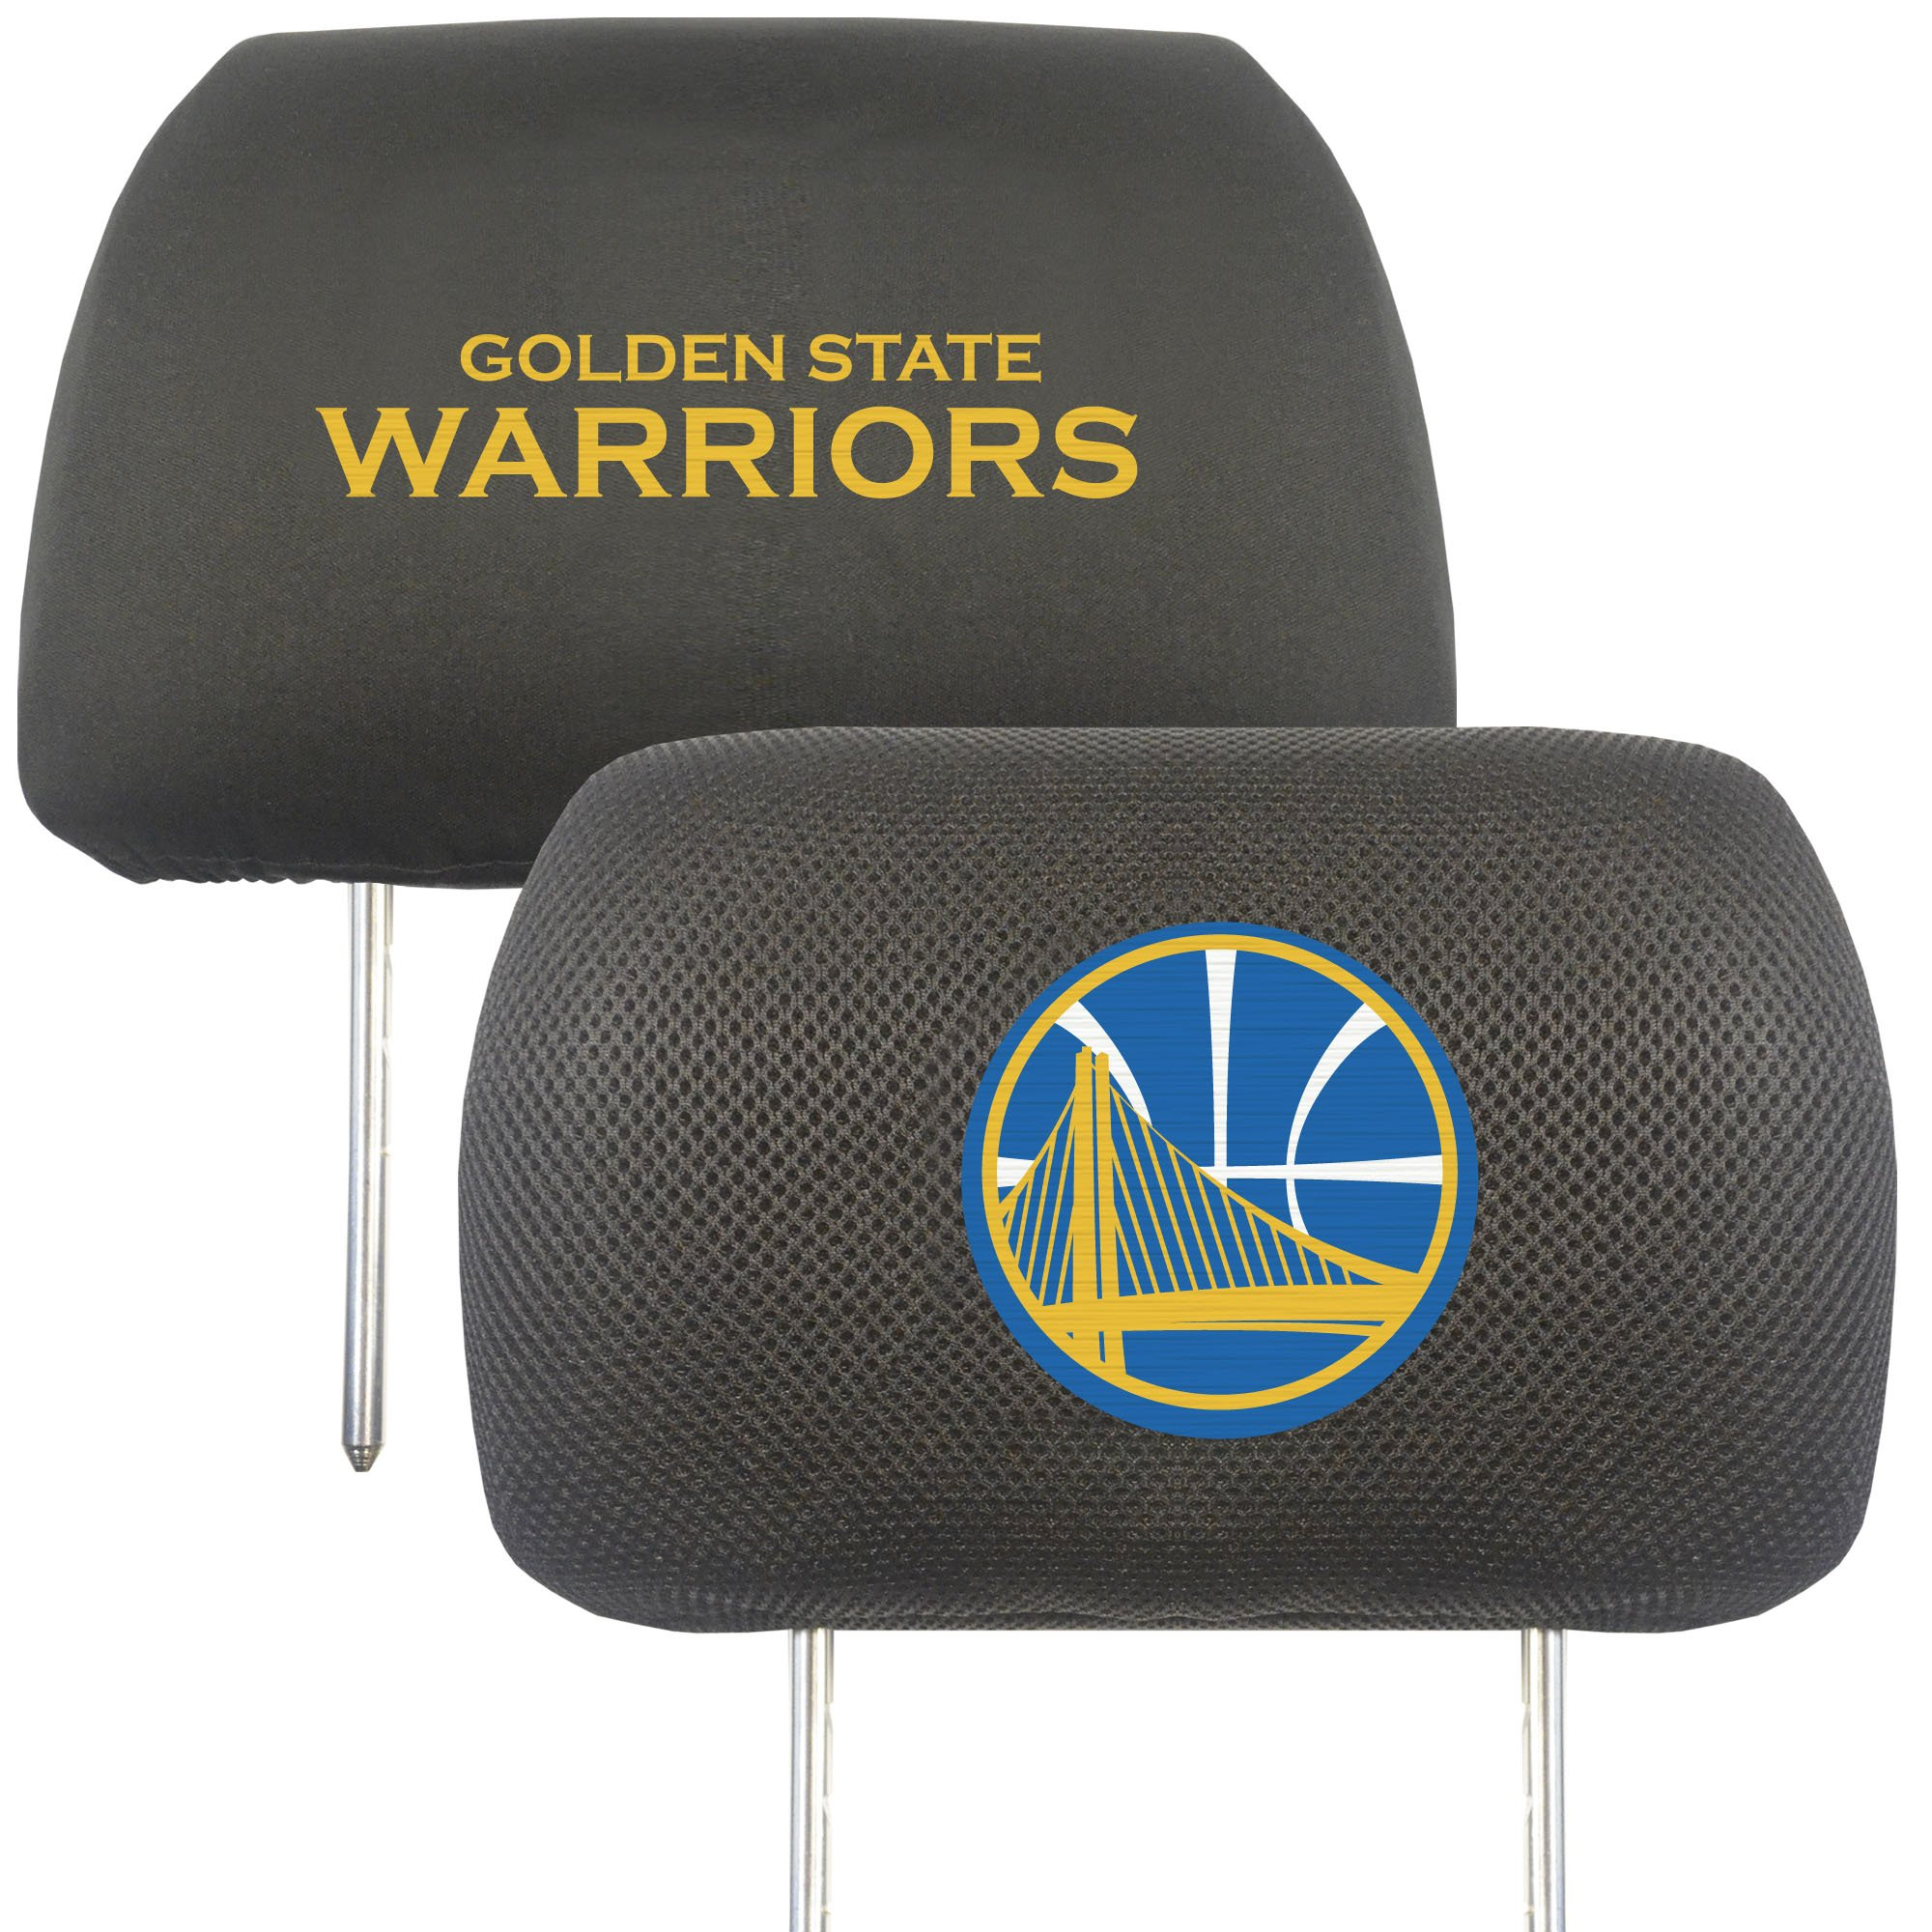 Fanmats 20323 NBA - Golden State Warriors Head Rest Cover, Team Color, 10''x13'' by Fanmats